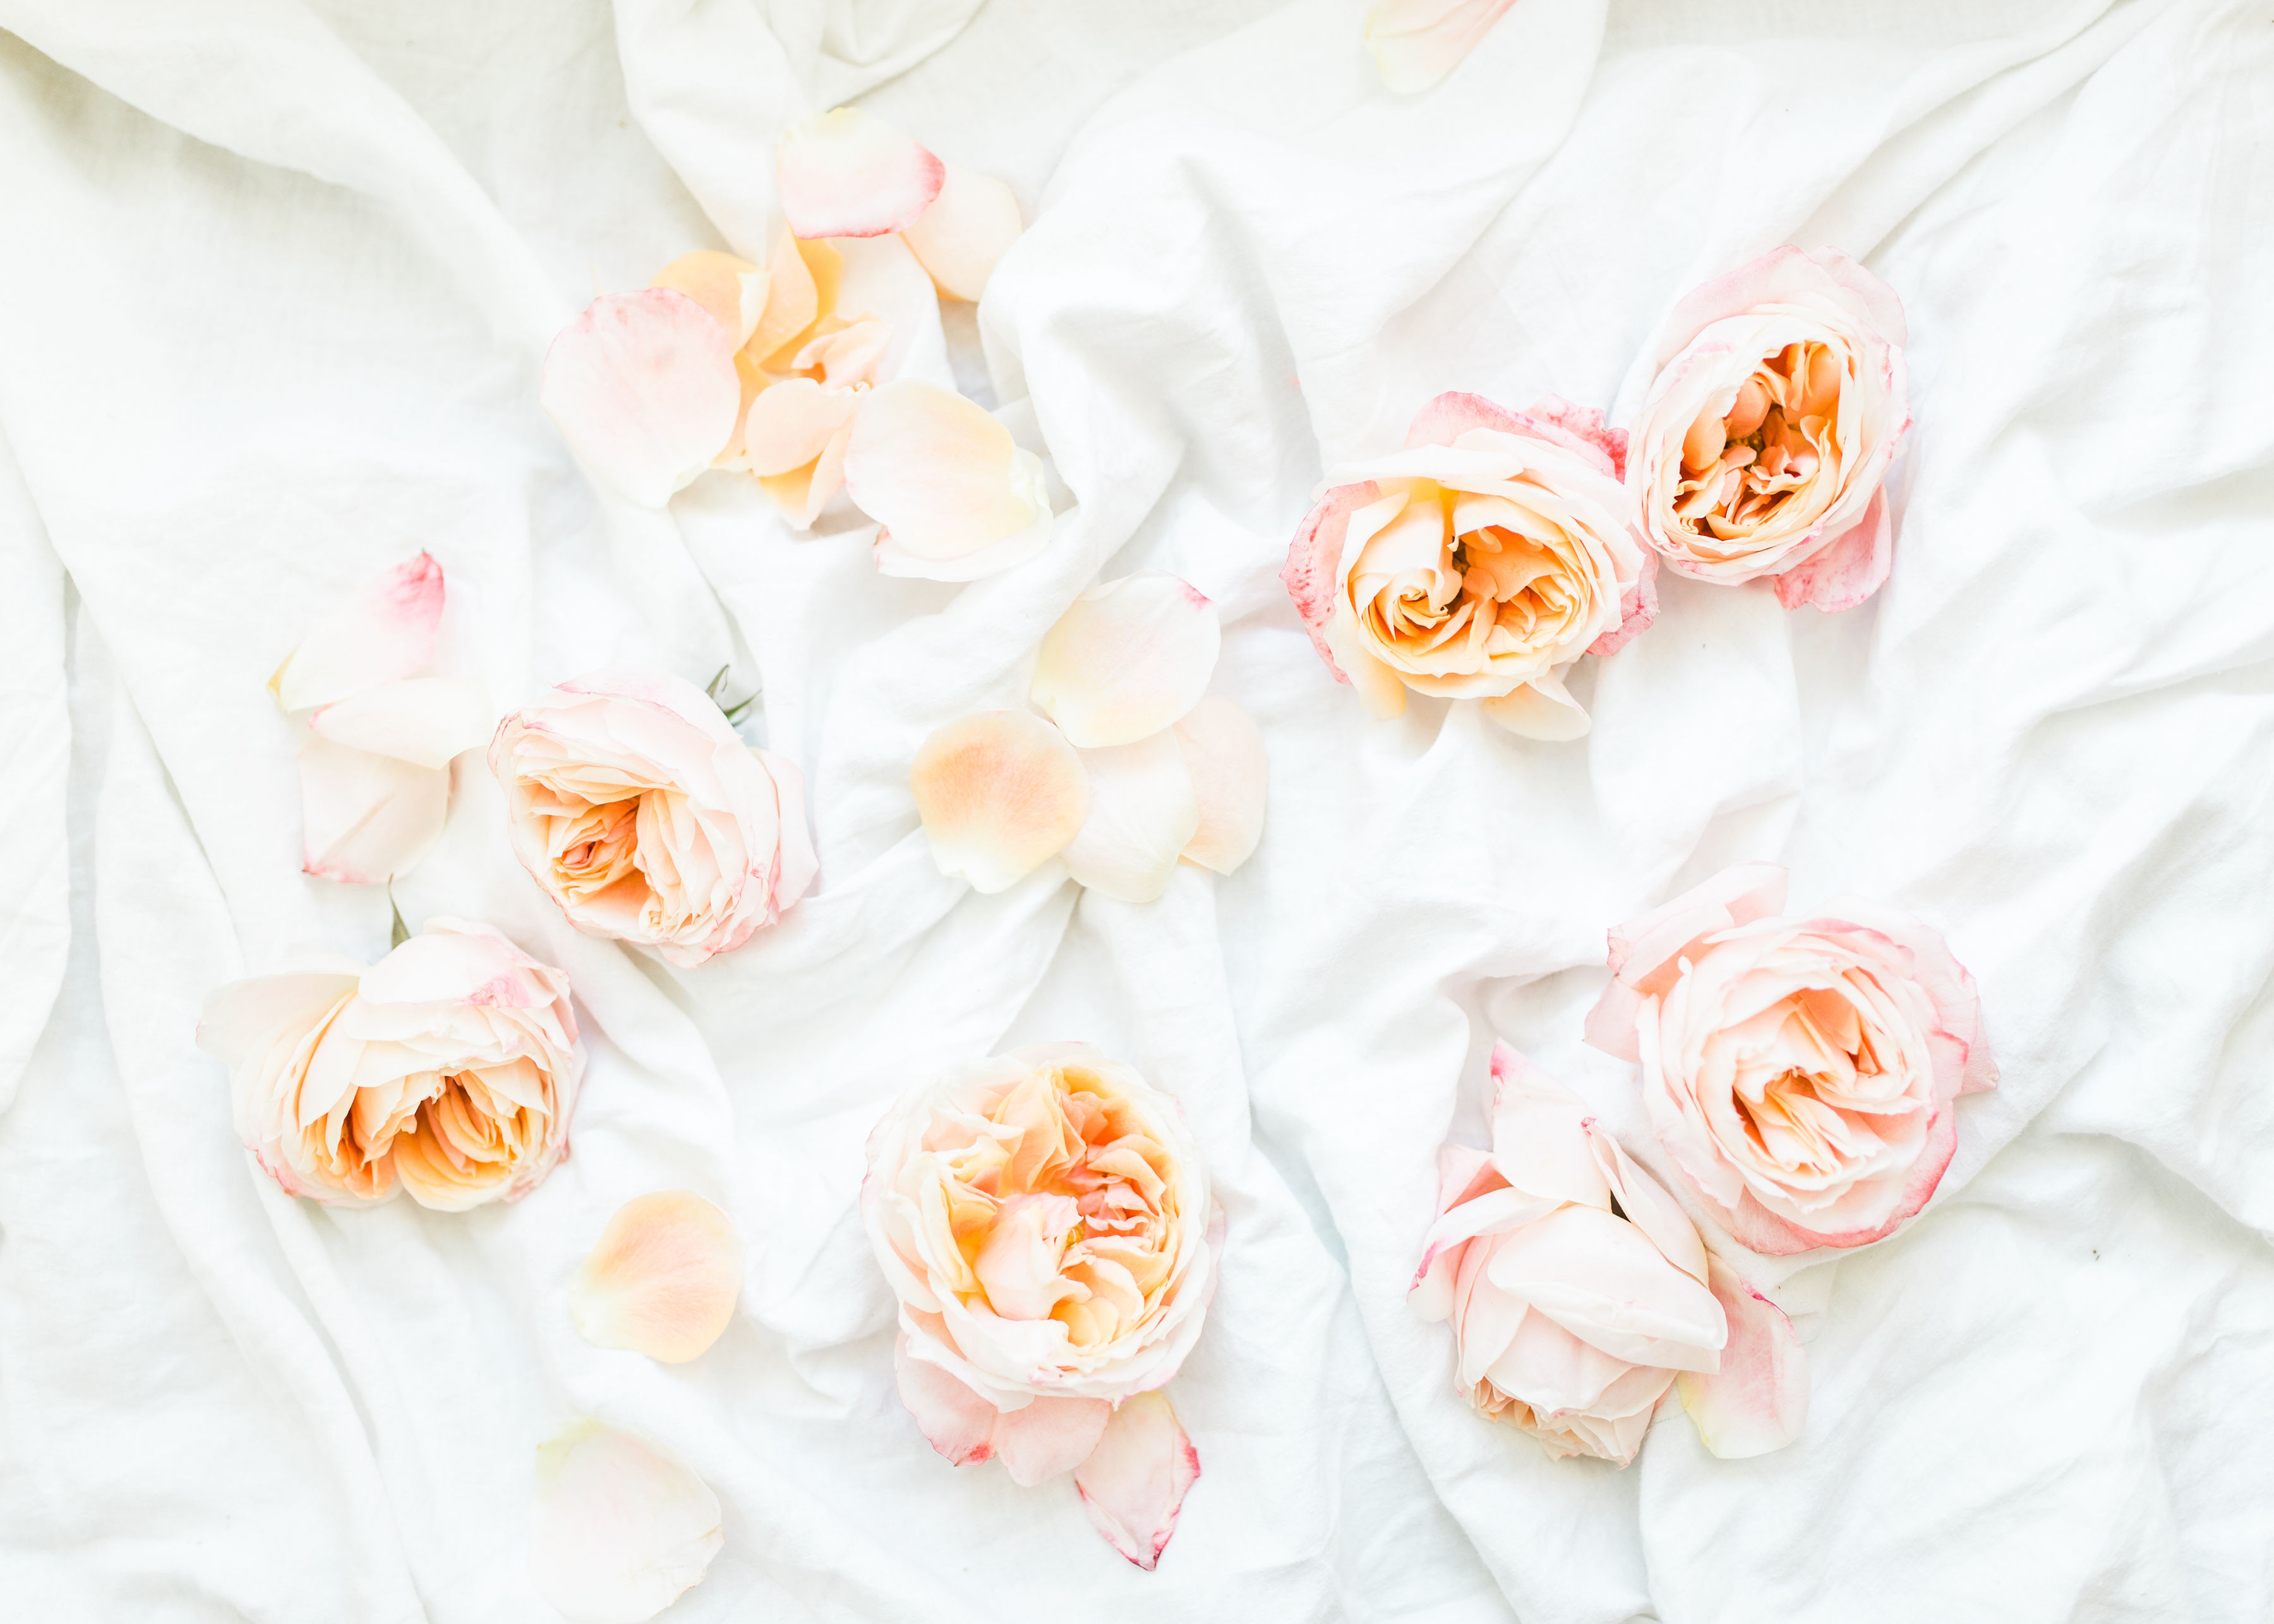 Lifestyle blogger Lexi of Glitter, Inc. shares a few little love notes to the things she loved most this week, including leftover roses from Valentines Day, weekend plans, and so much more.